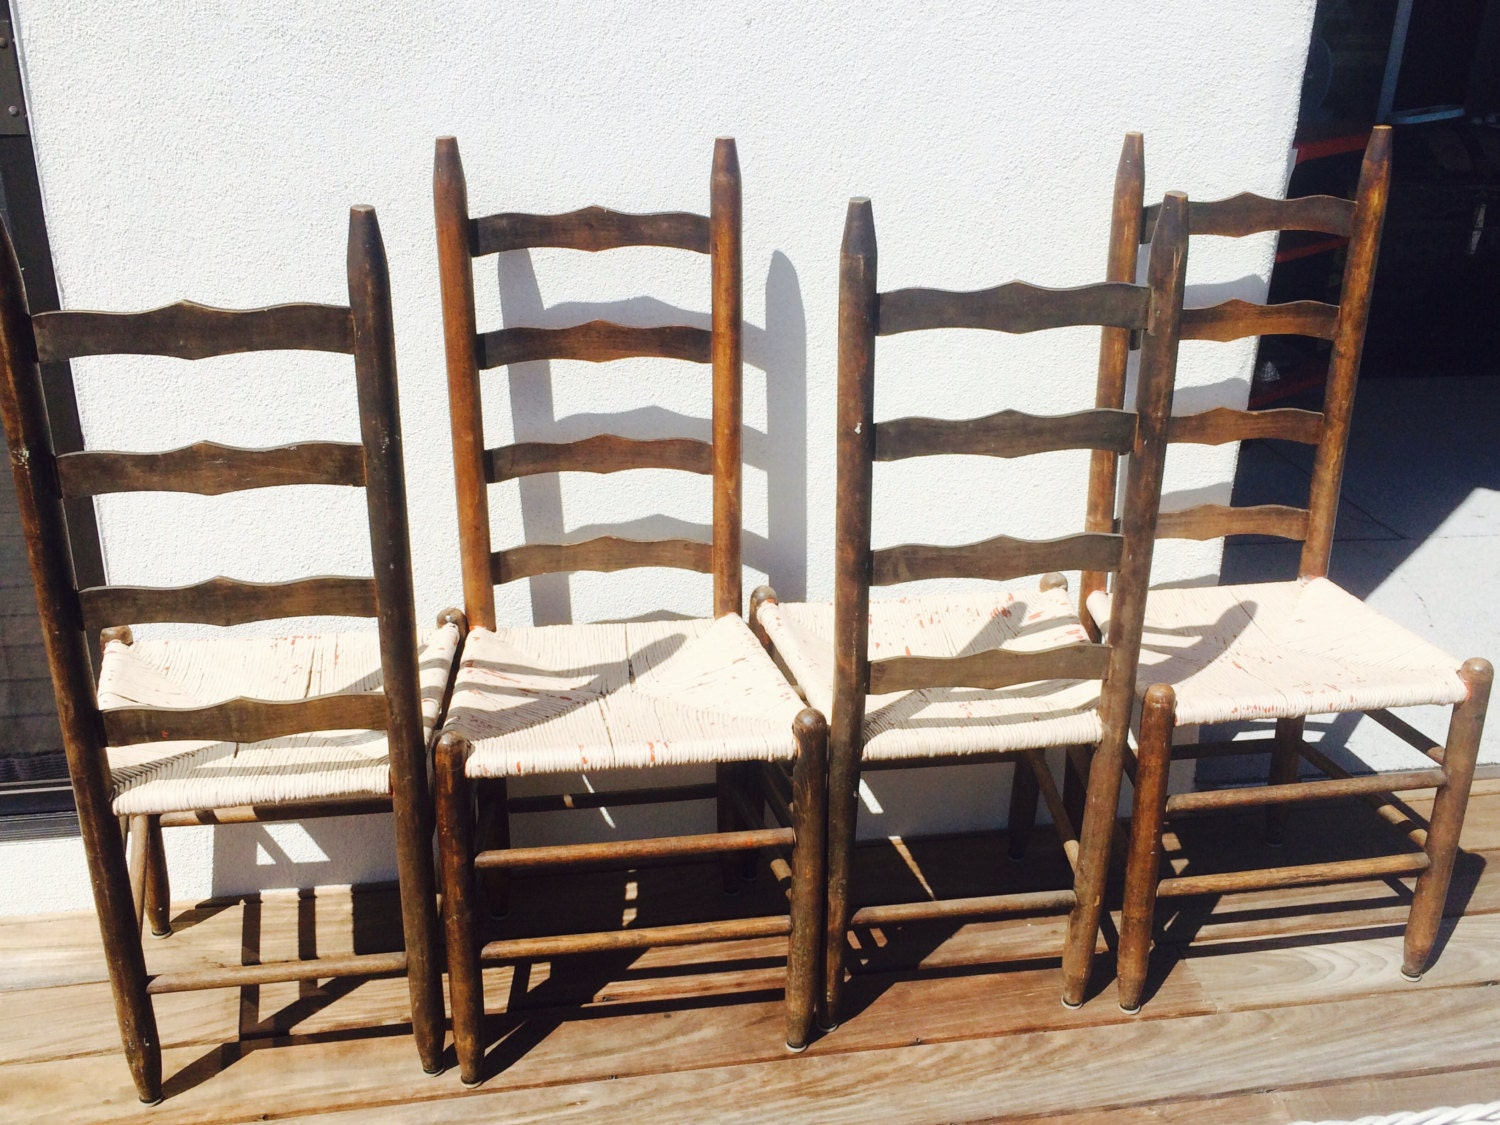 Antique ladderback chairs - Like This Item